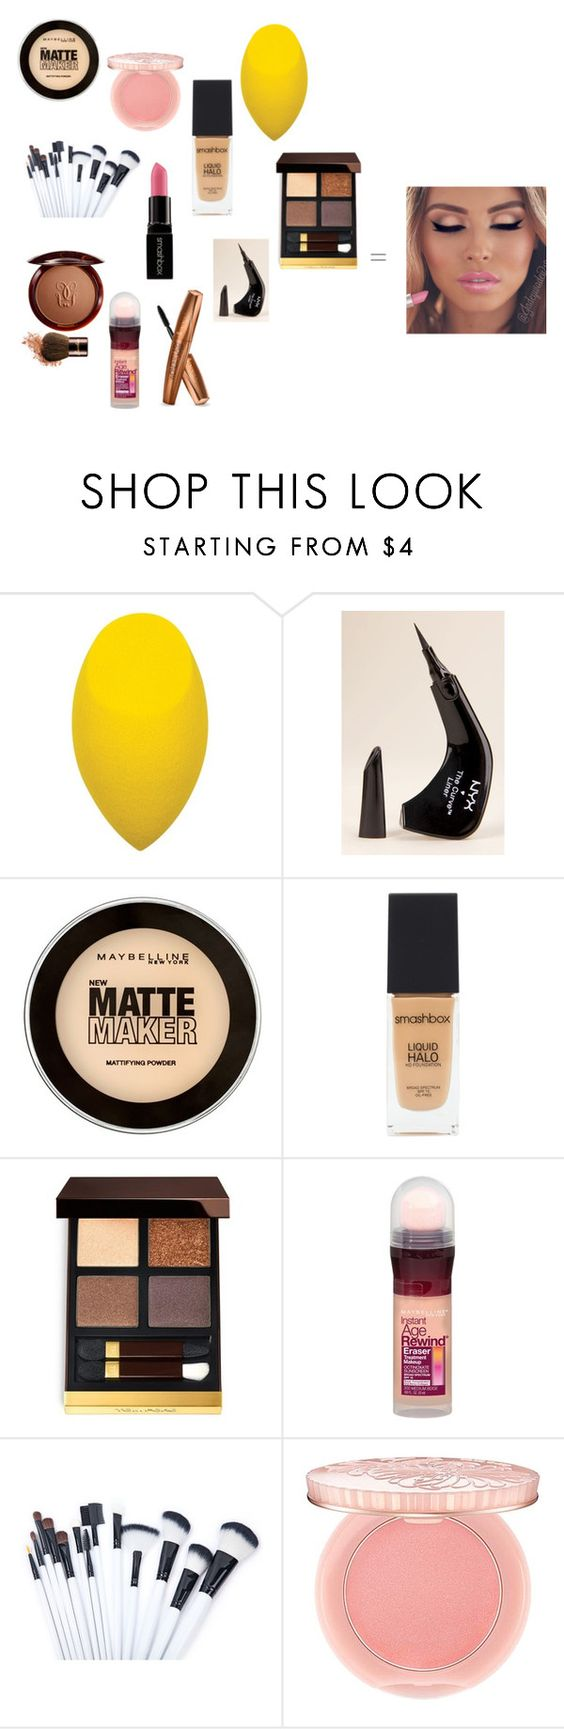 """""""Glowing girl makeup"""" by hannahrickerson ❤ liked on Polyvore featuring beauty, NYX, Maybelline, Smashbox, Tom Ford, Girlactik and Paul & Joe"""